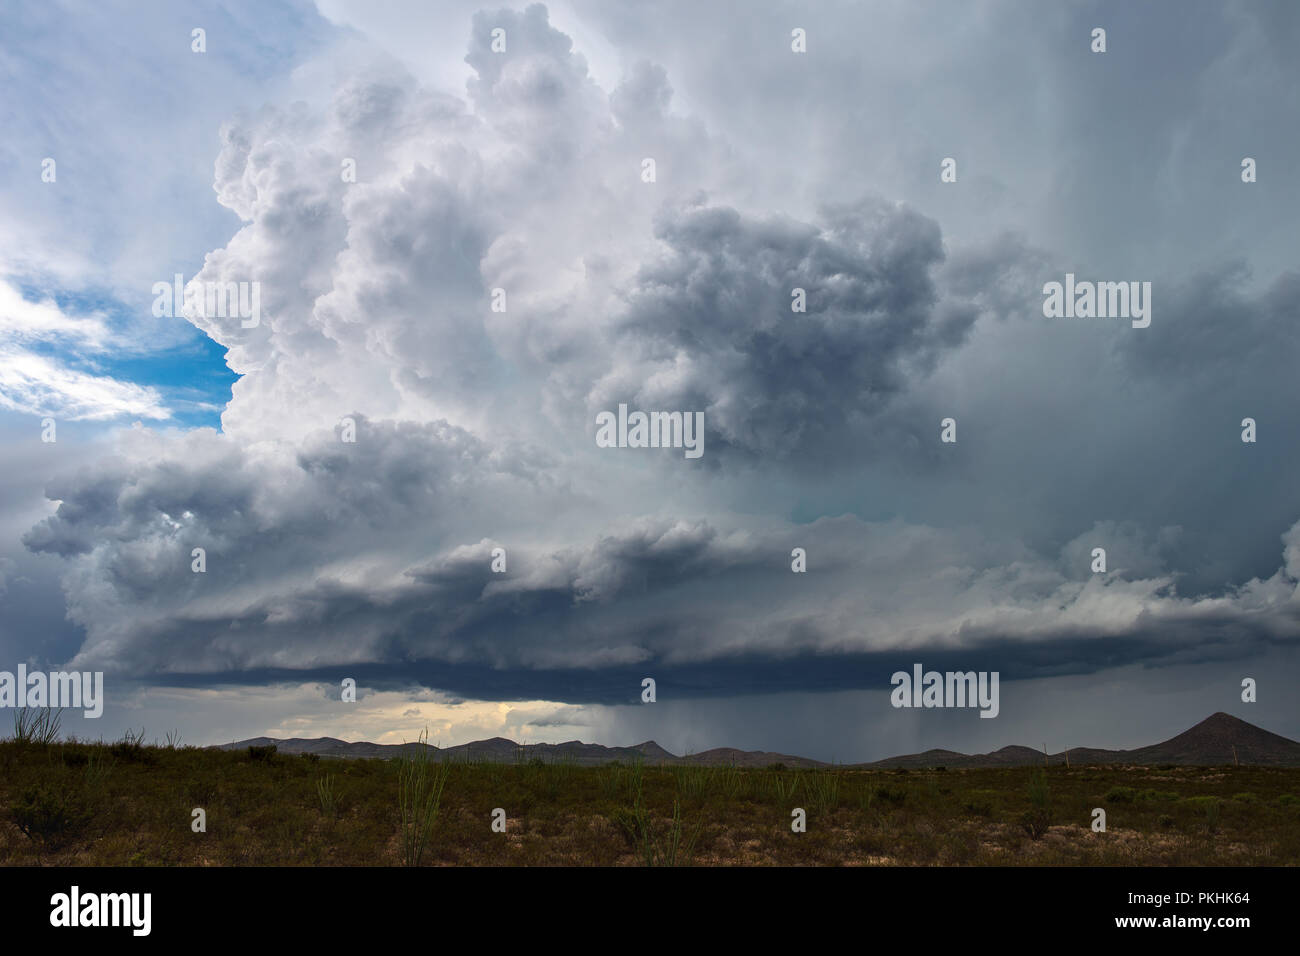 Supercell thunderstorm cloud - Stock Image